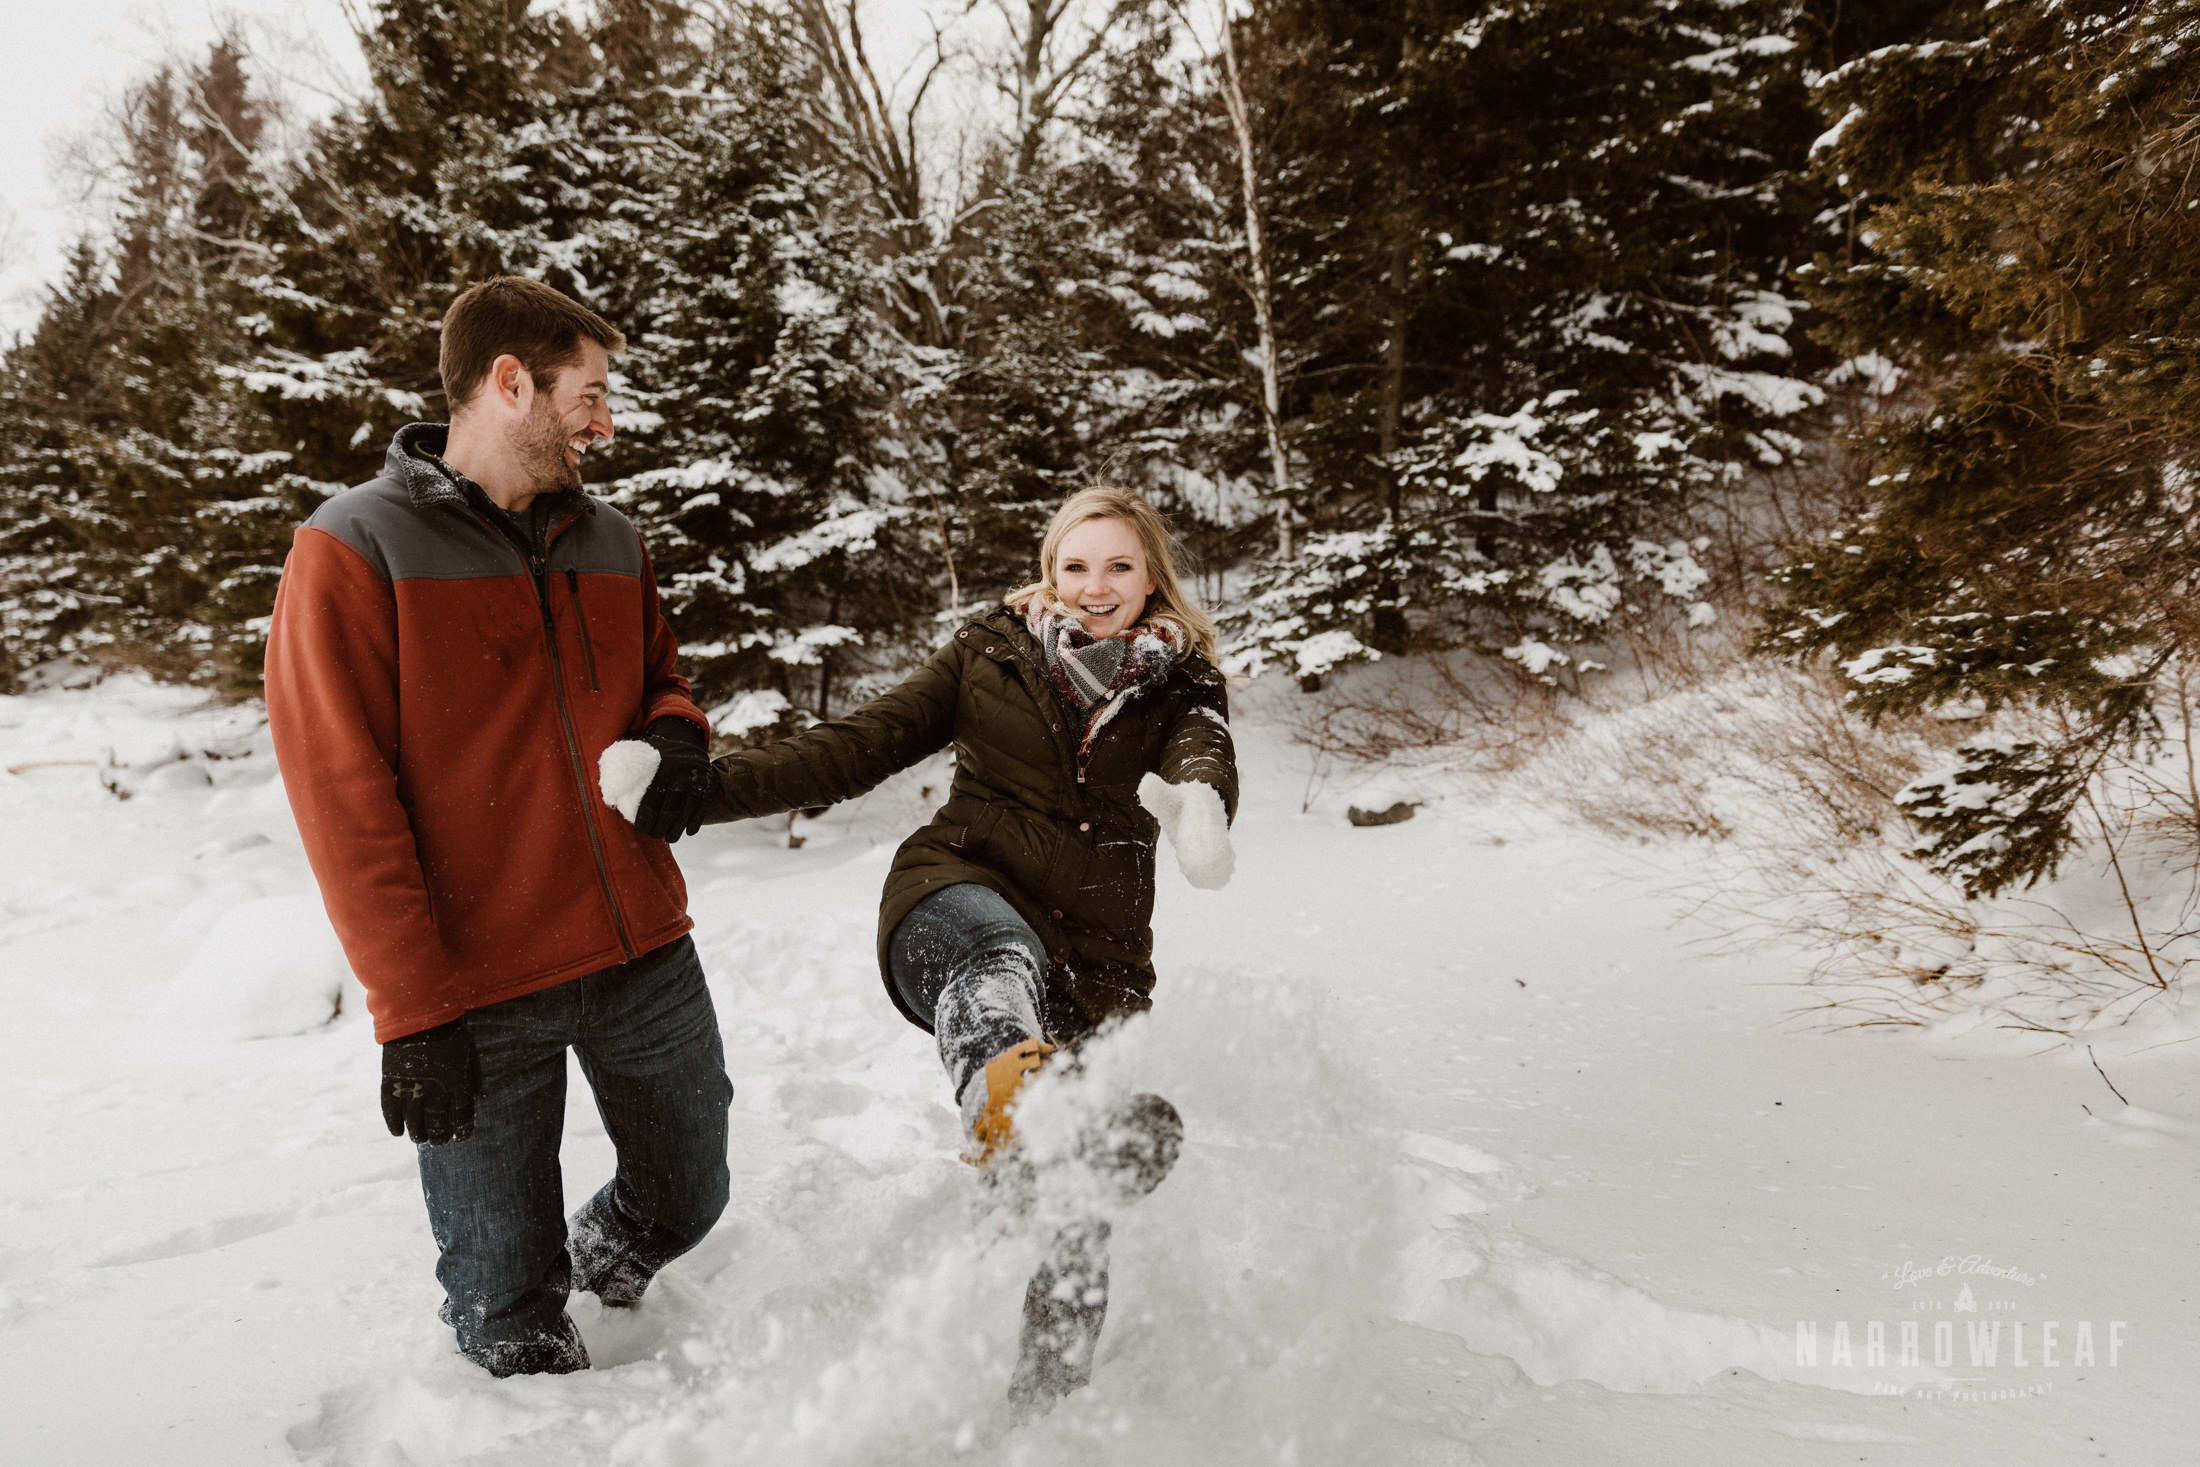 North-Shore-Minnesota-winter-Engagement-photos-Narrowleaf-Adventure-Photography-9231.jpg